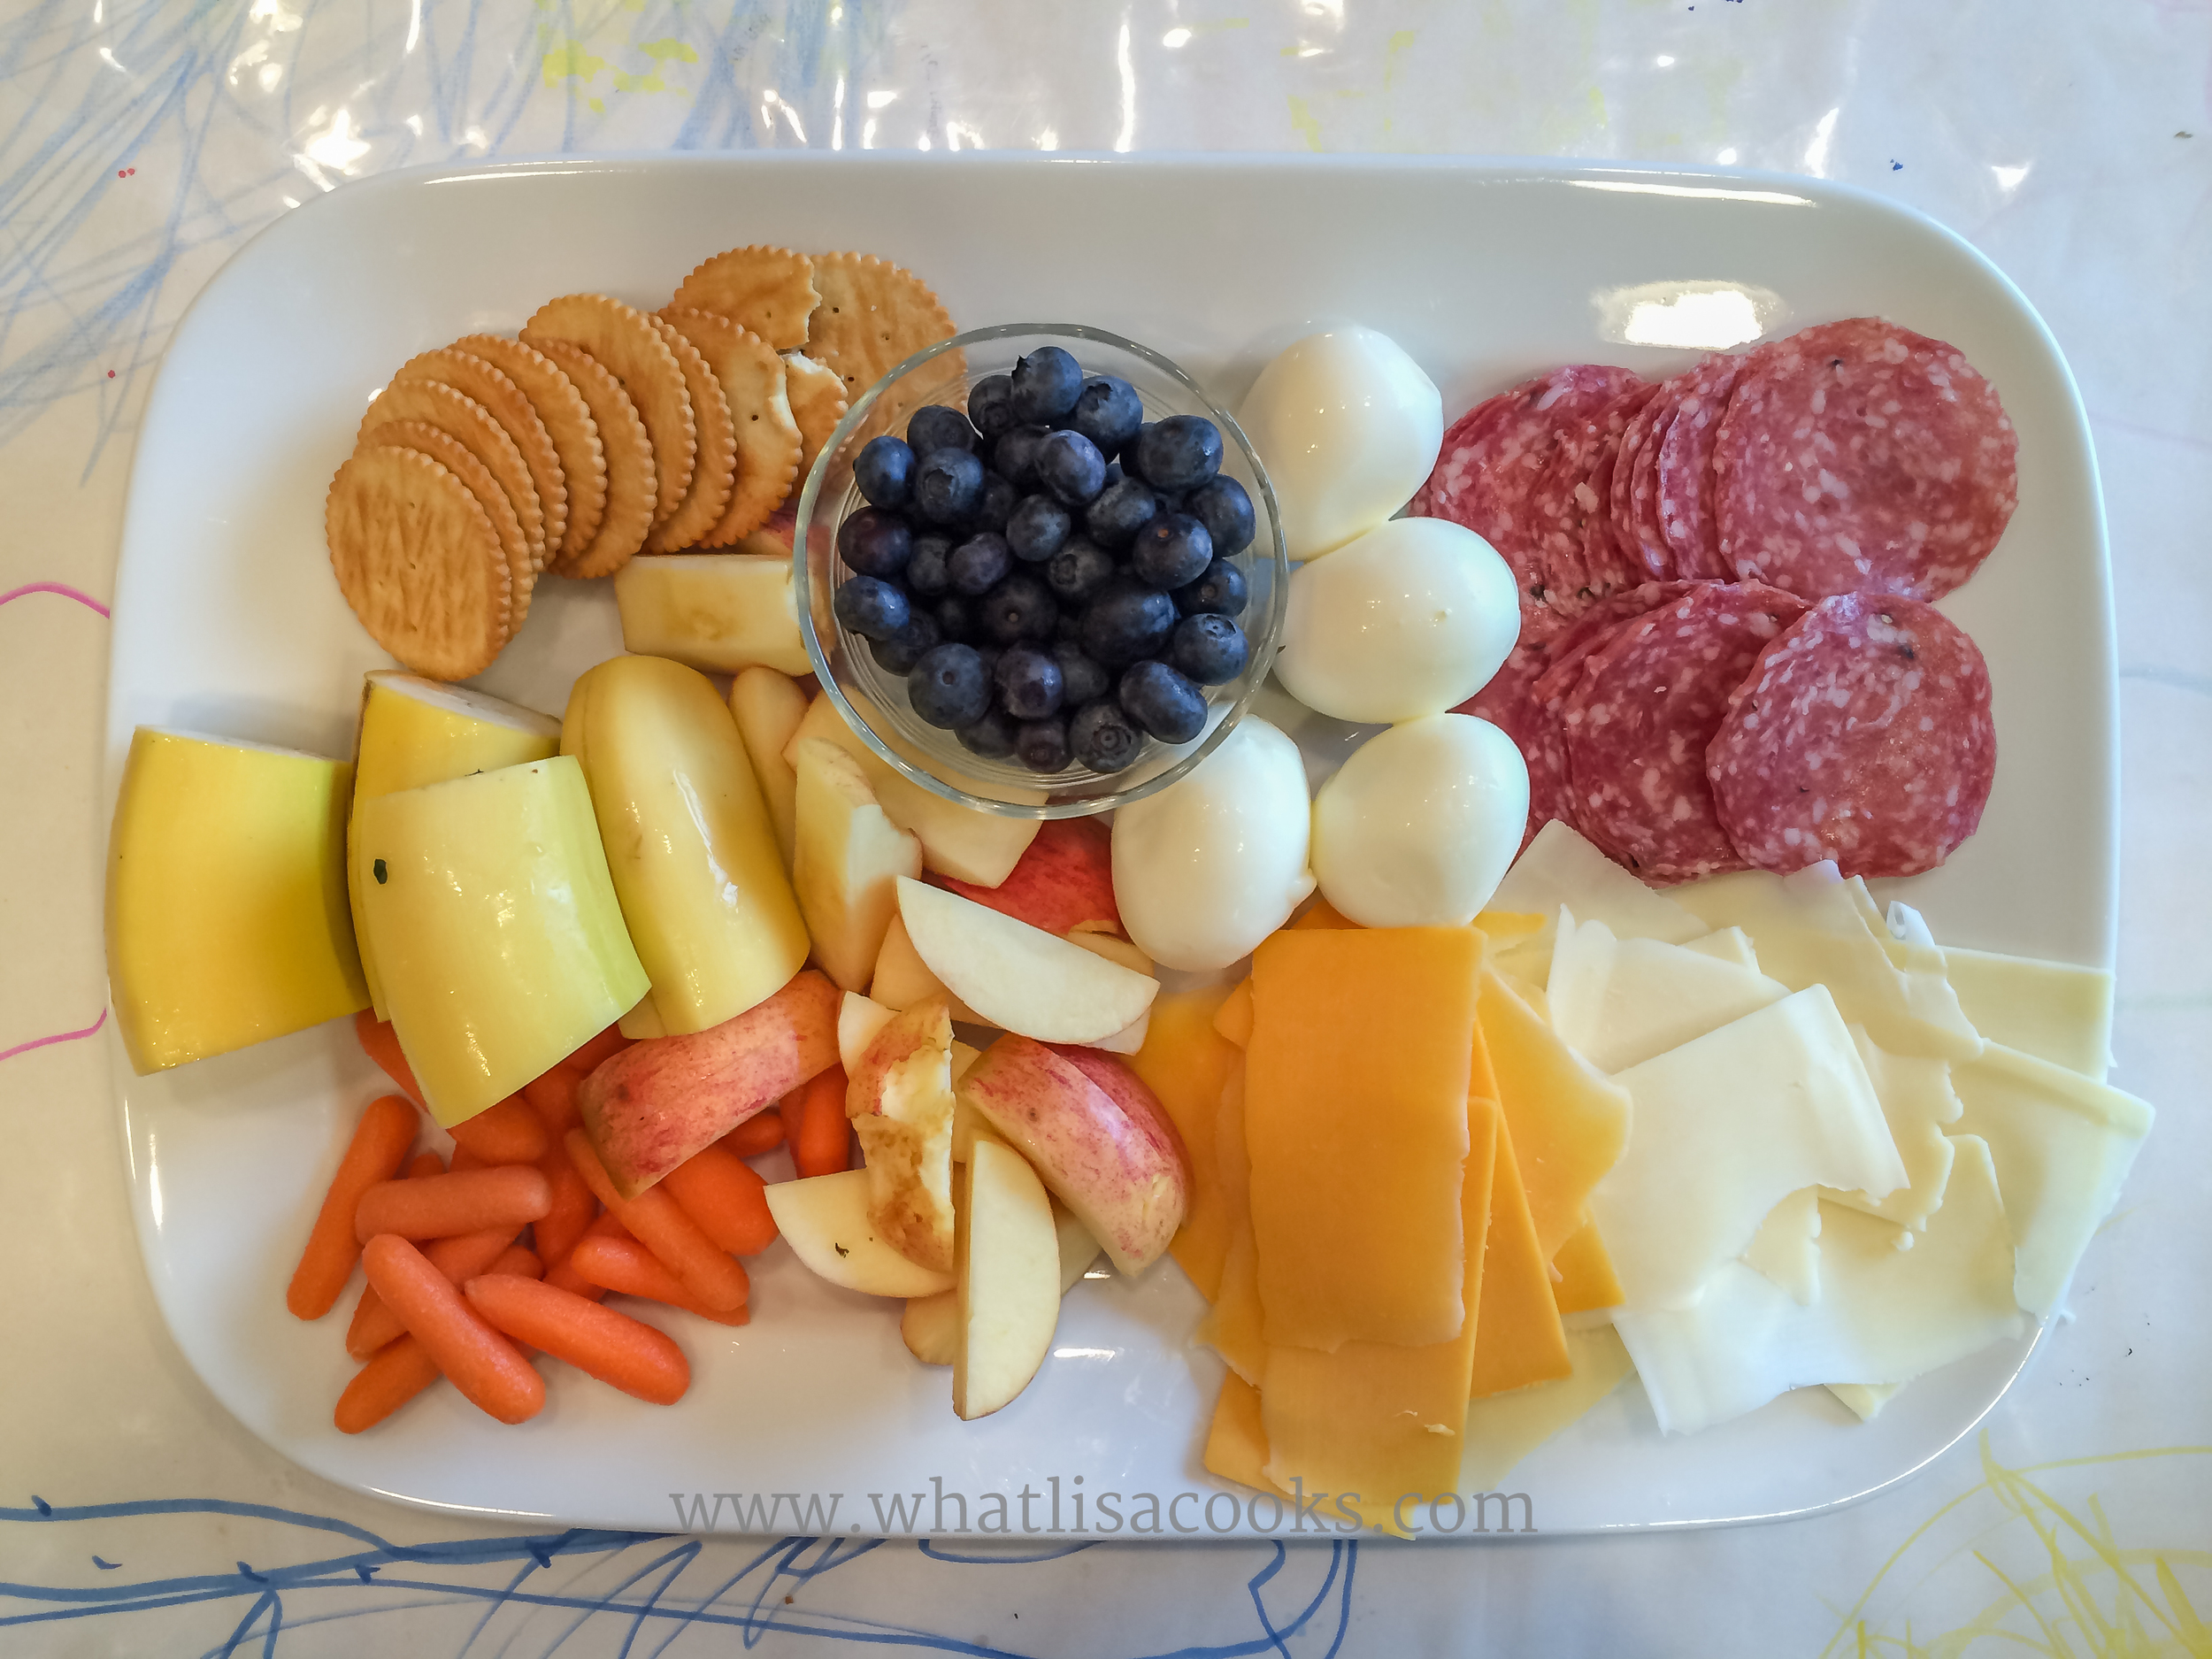 Apples, bananas, carrots, cheeses, salami, boiled egg, blueberries and a few crackers (that was all the crackers I gave for four kids to share).